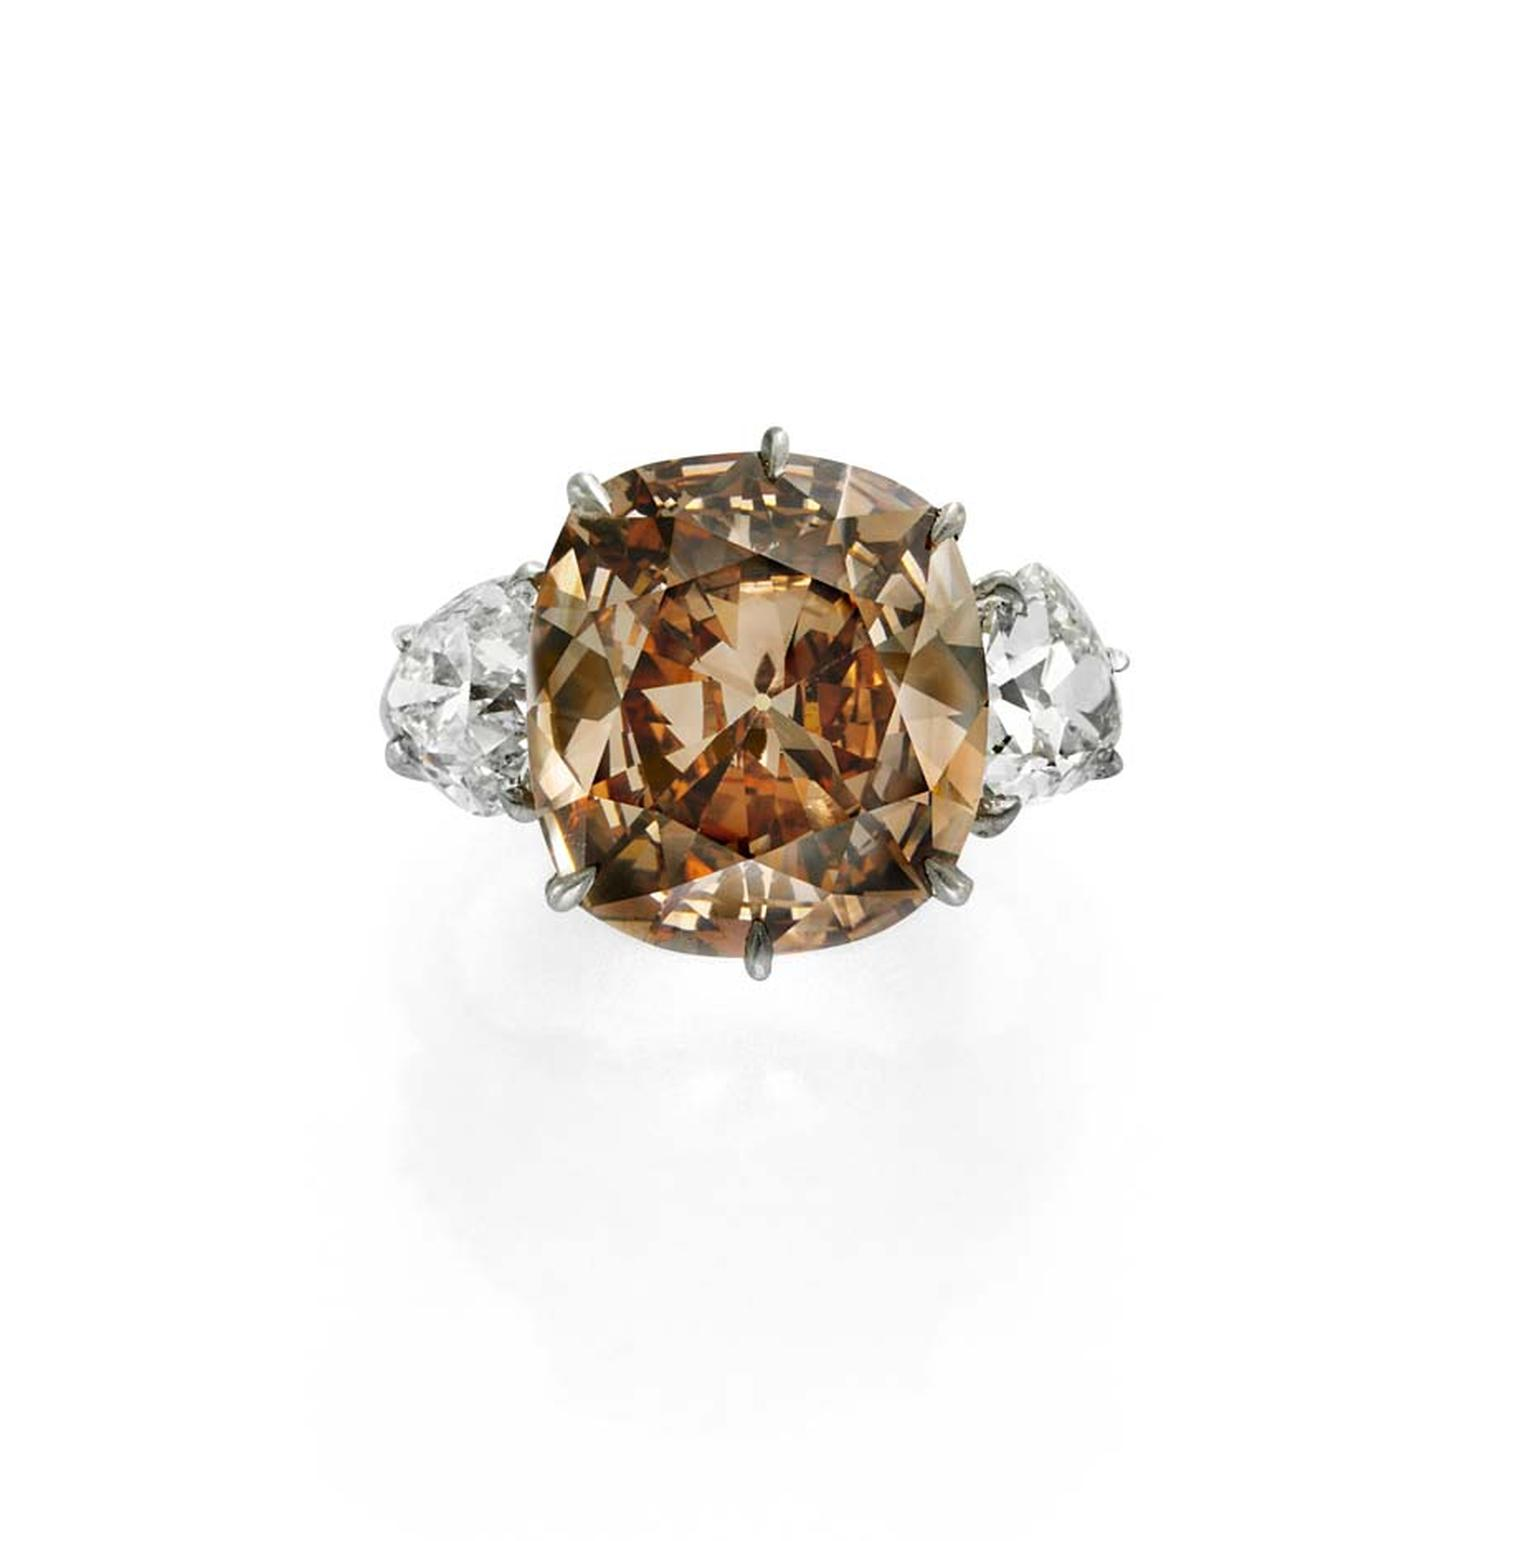 Simon Teakle's 7ct orange-brown diamond ring is flanked by two white diamonds.